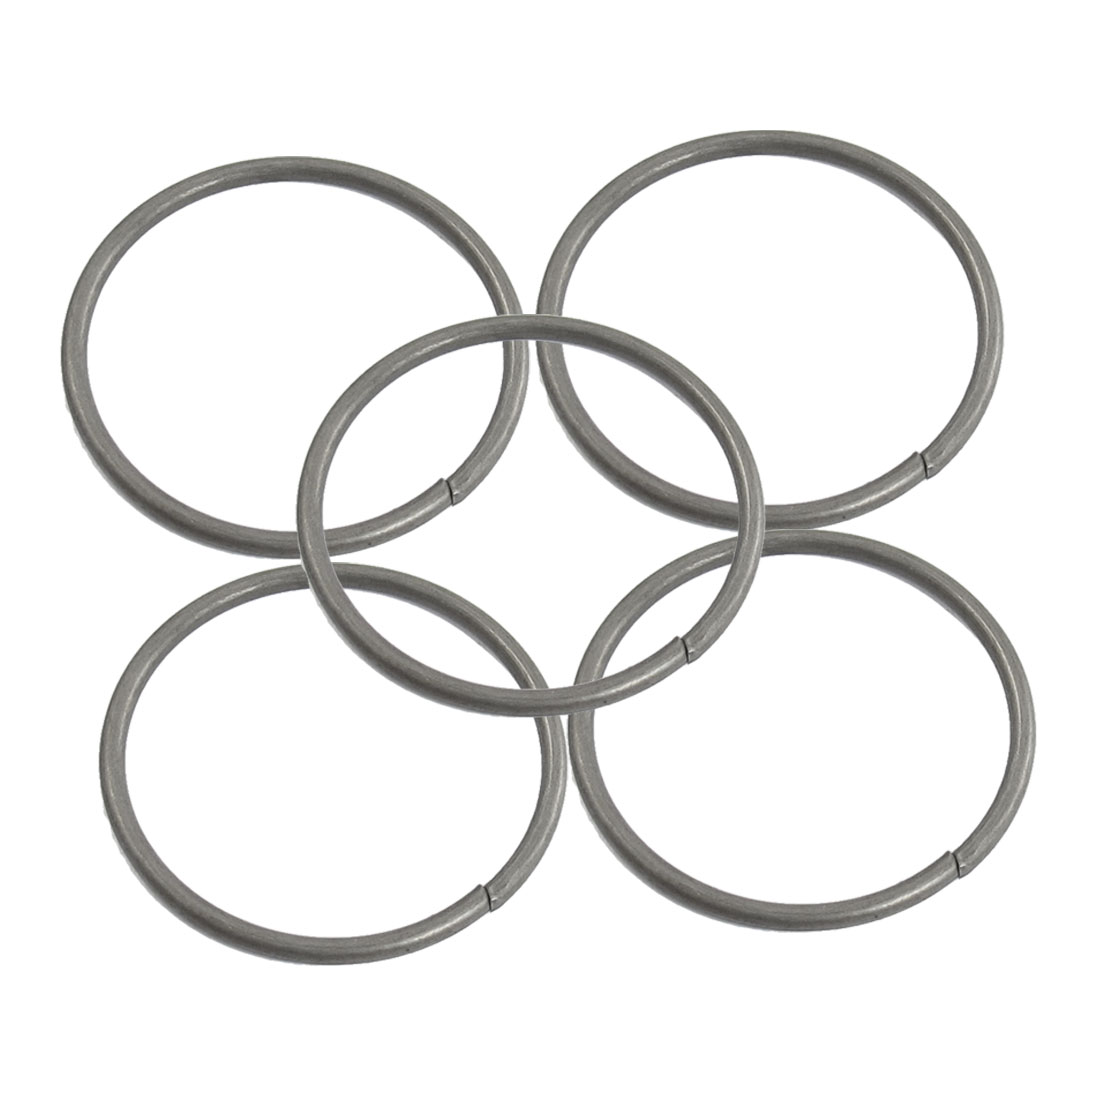 5 Pcs 31mmx35mmx2mm Retaining Ring for ZIC-FF-26 Electric Hammer 907 Bearing